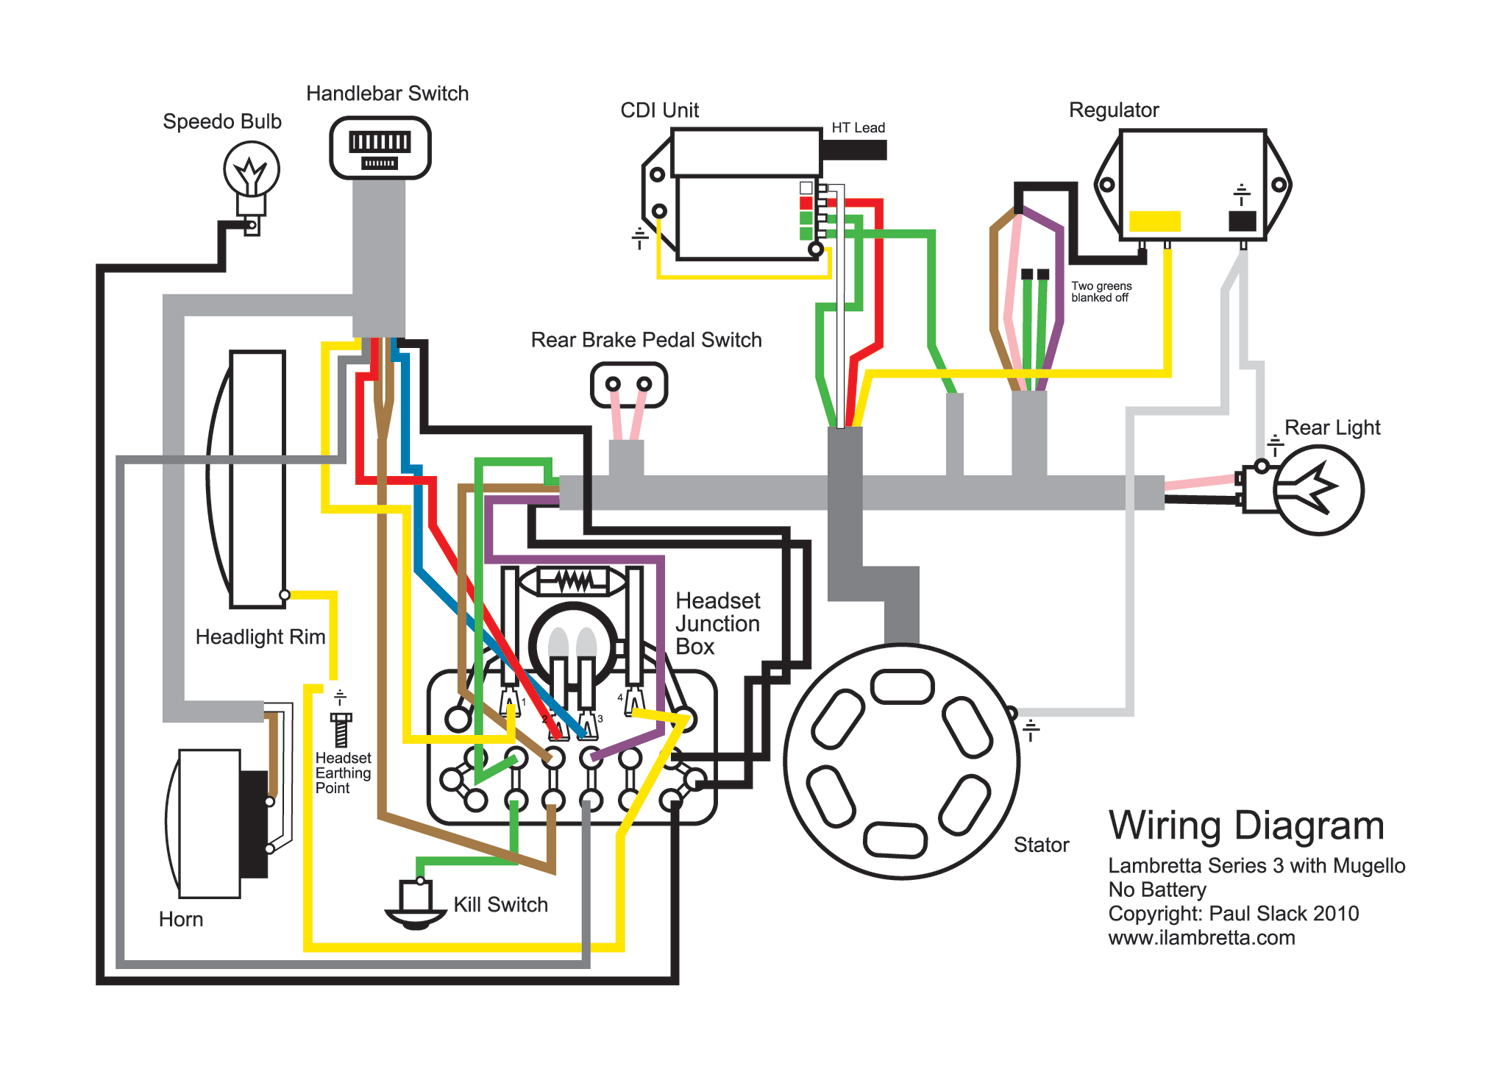 Li150 Wiring lambretta restoration wiring diagram for mugello 12 volt upgrade on lambretta wiring diagram